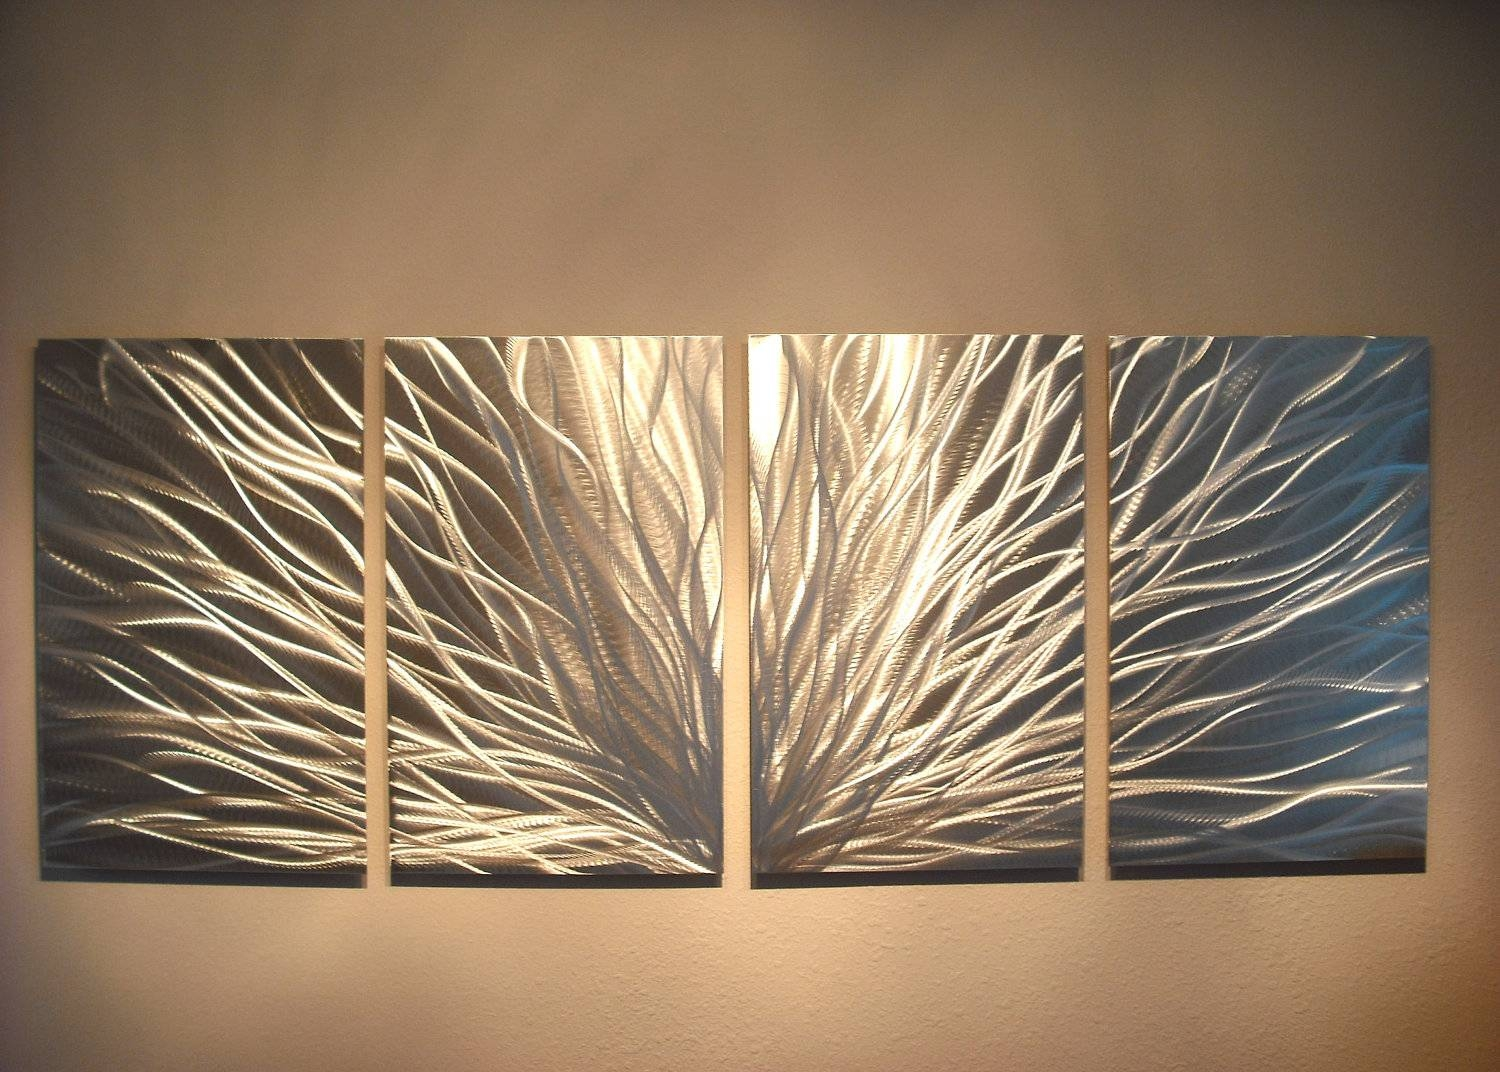 Radiance – Abstract Metal Wall Art Contemporary Modern Decor In 2017 Metal Wall Art Decor And Sculptures (View 5 of 20)